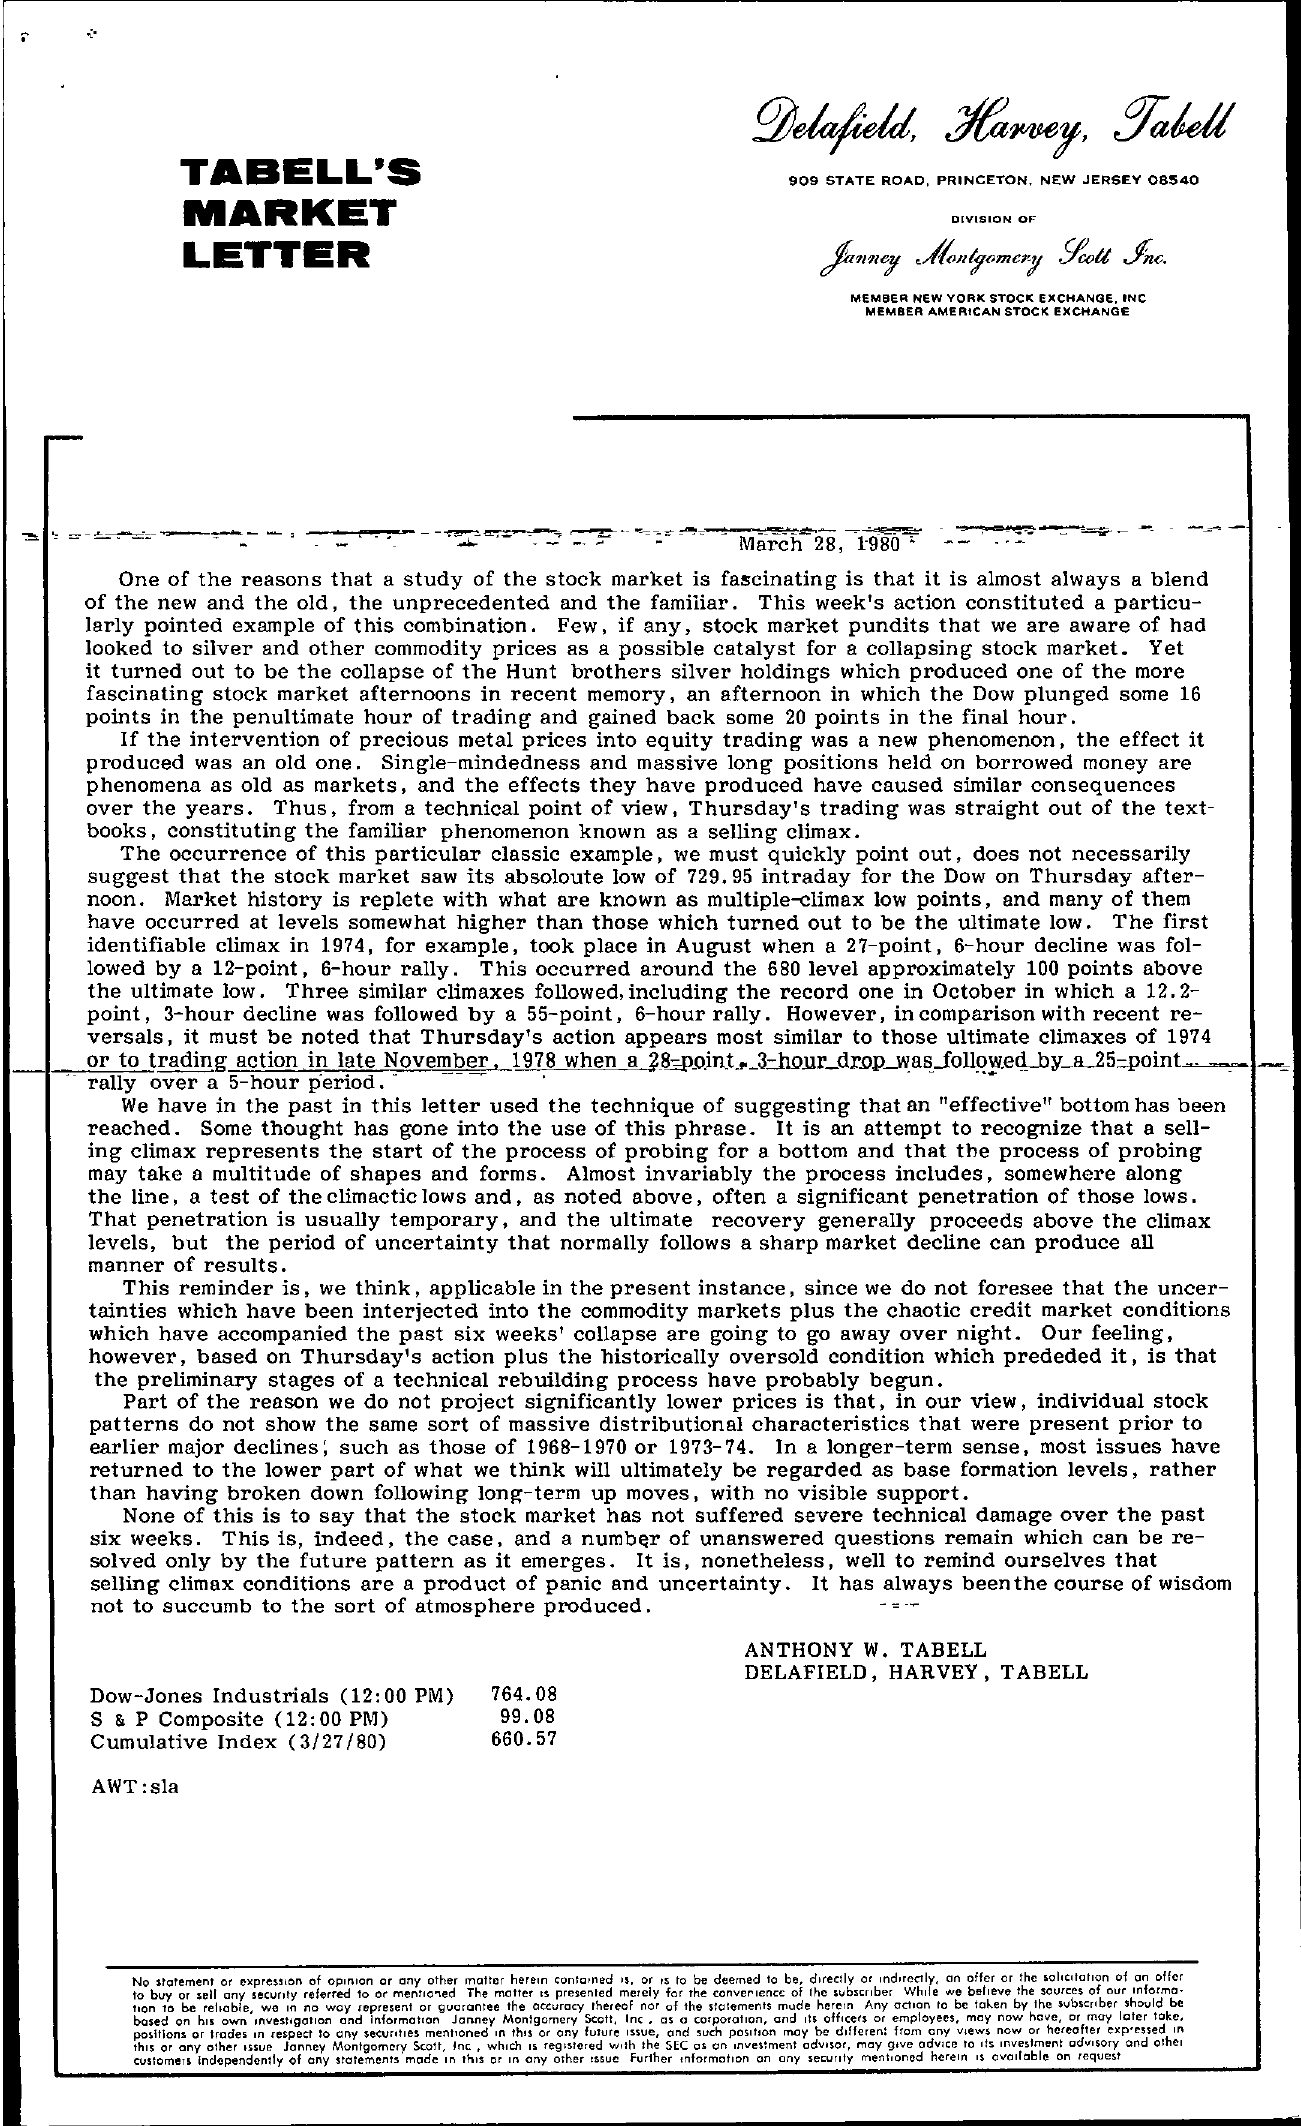 Tabell's Market Letter - March 28, 1980